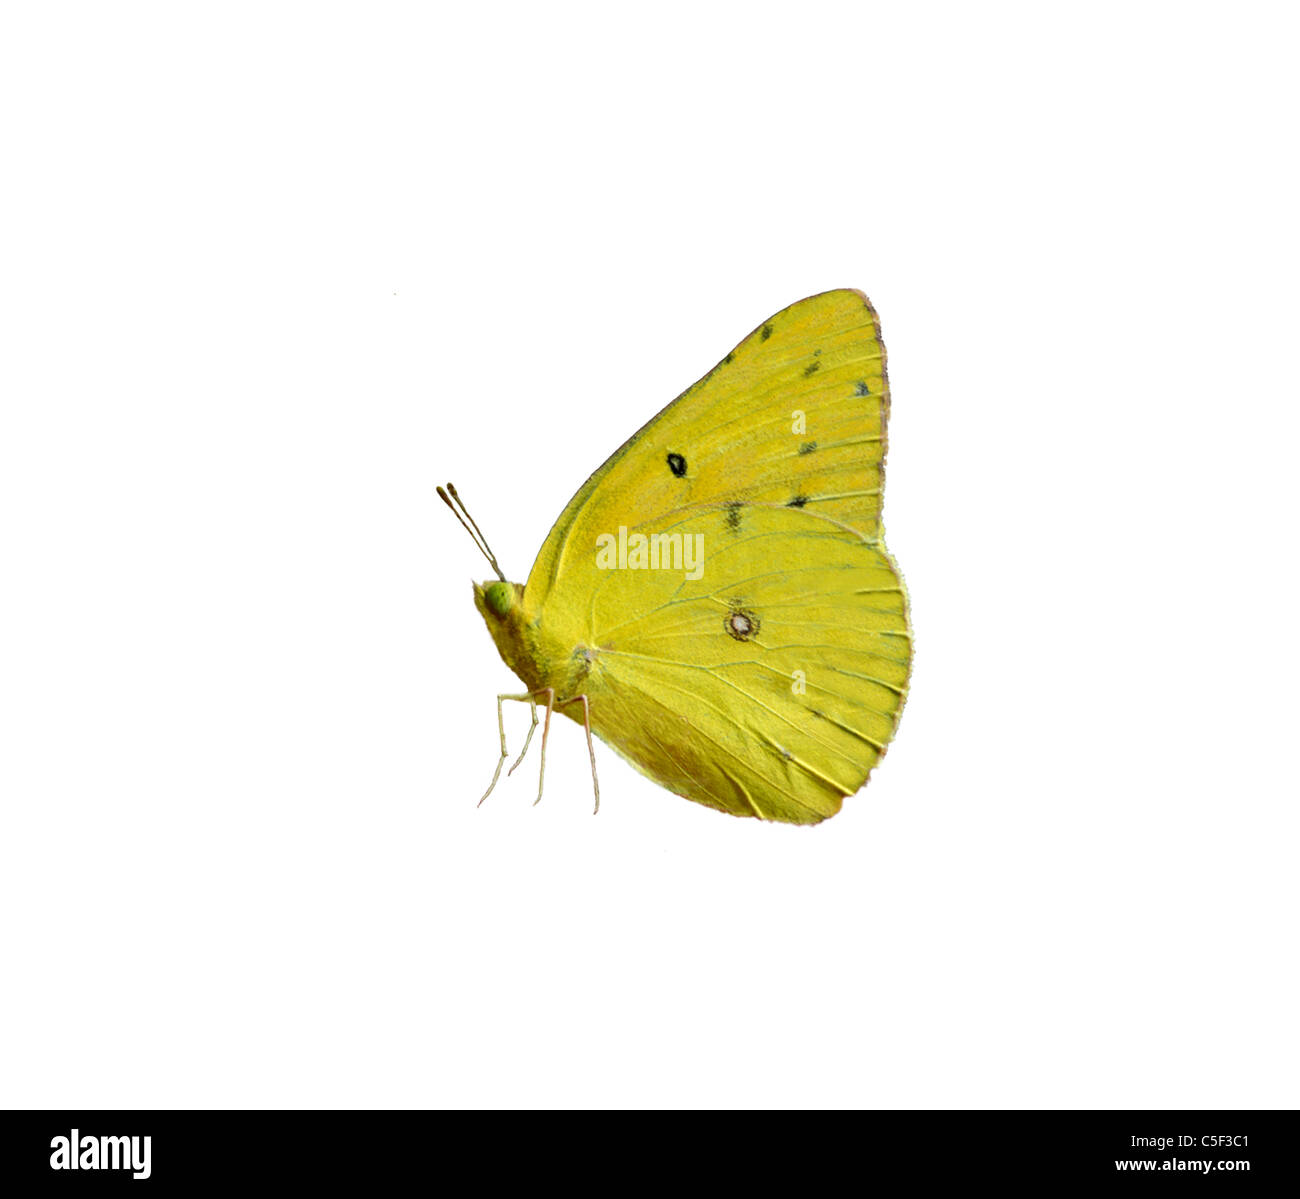 Profile of a Cloudless Sulphur butterfly - Stock Image